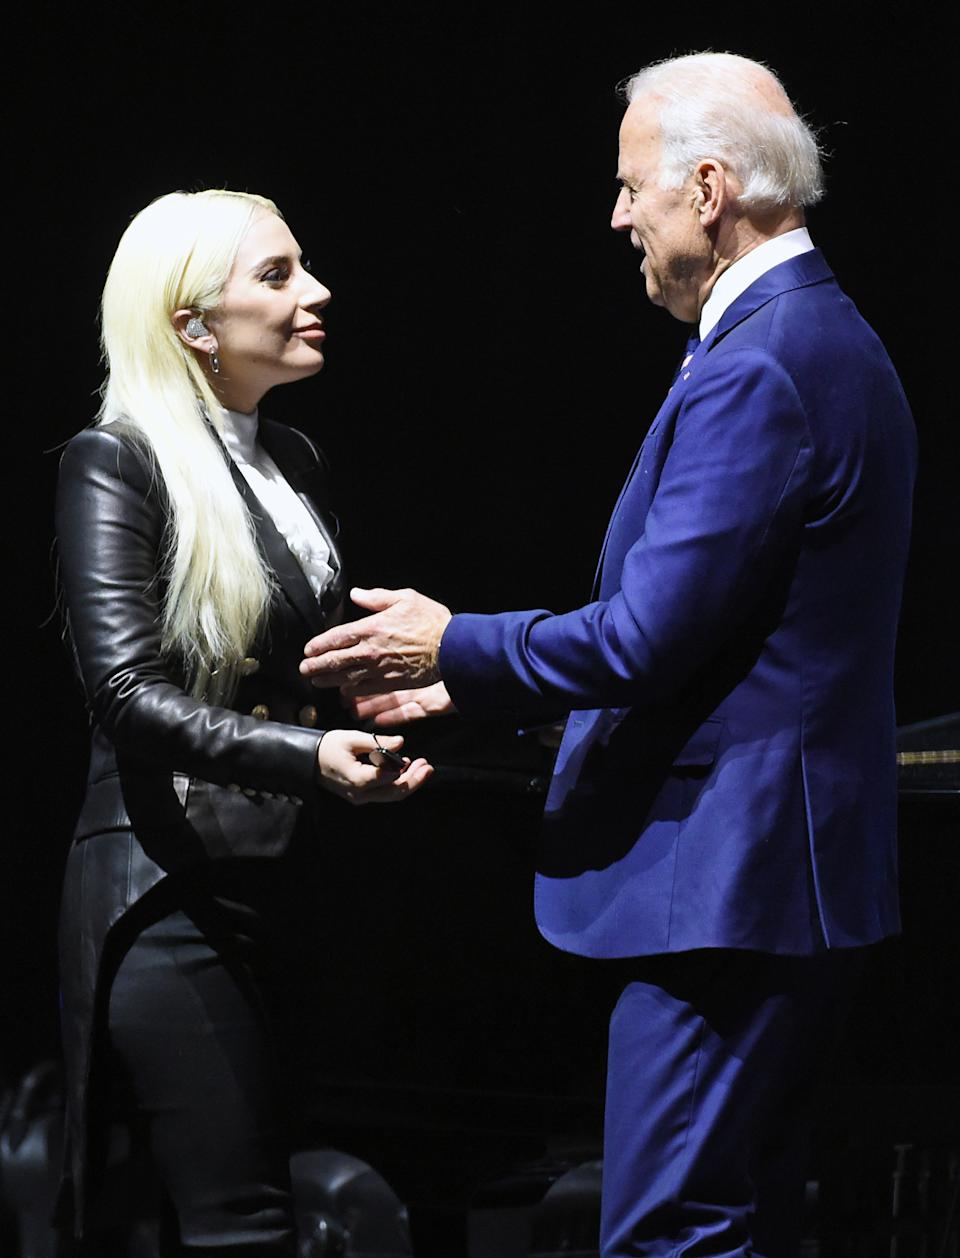 Lady Gaga (L) is greeted by Joe Biden after she performed for students as part of the national It's On Us Week of Action at the Cox Pavilion at UNLV on April 7, 2016 in Las Vegas, Nevada.  (Photo by Ethan Miller/Getty Images)